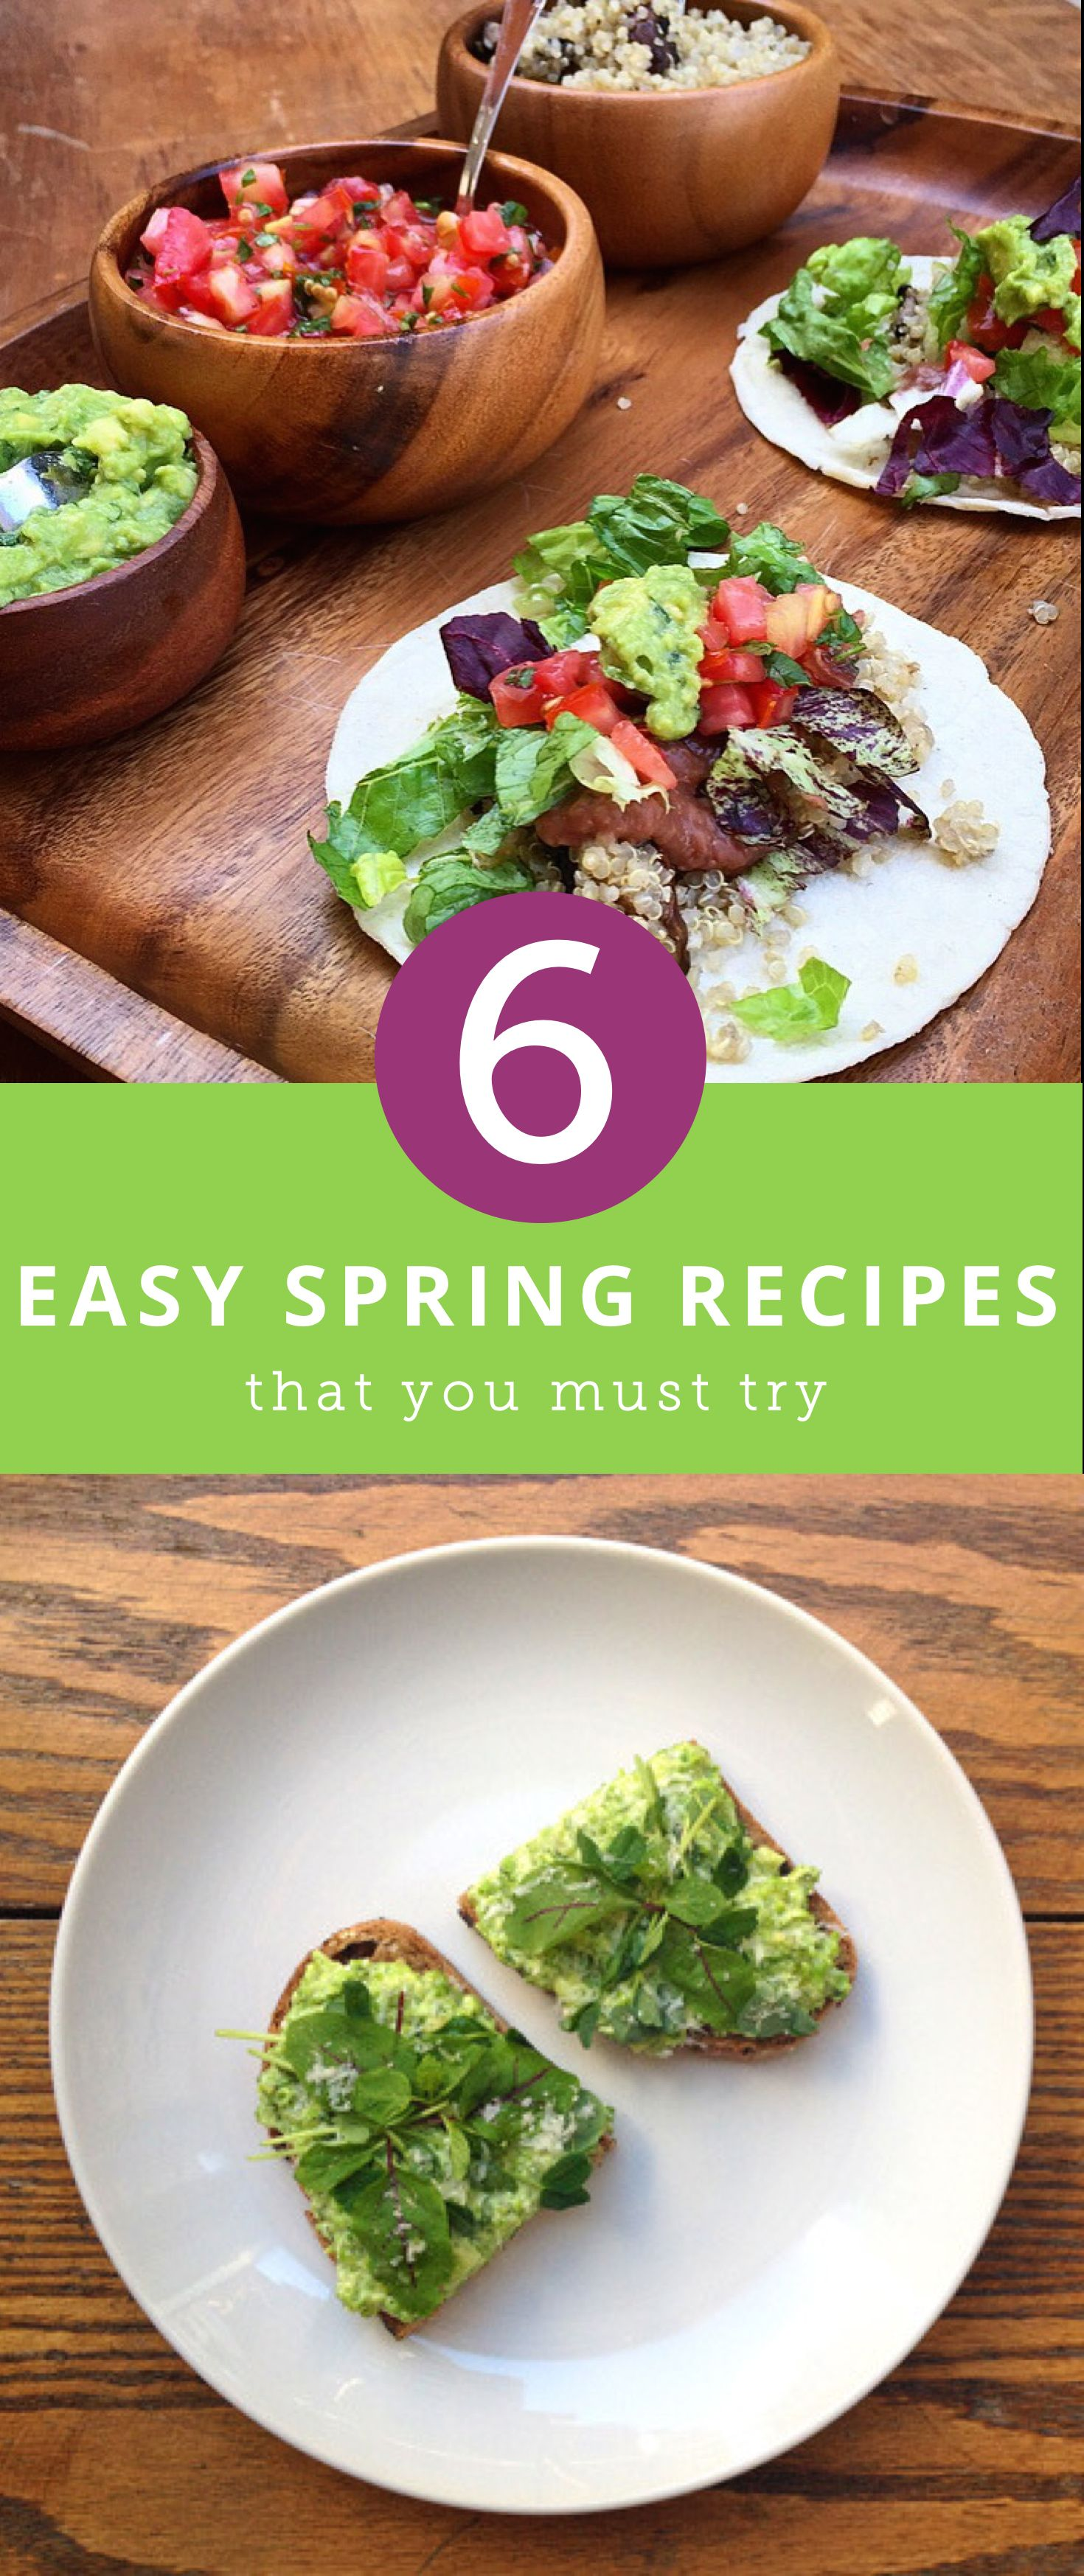 6 Easy Spring Recipes You've Got to Try